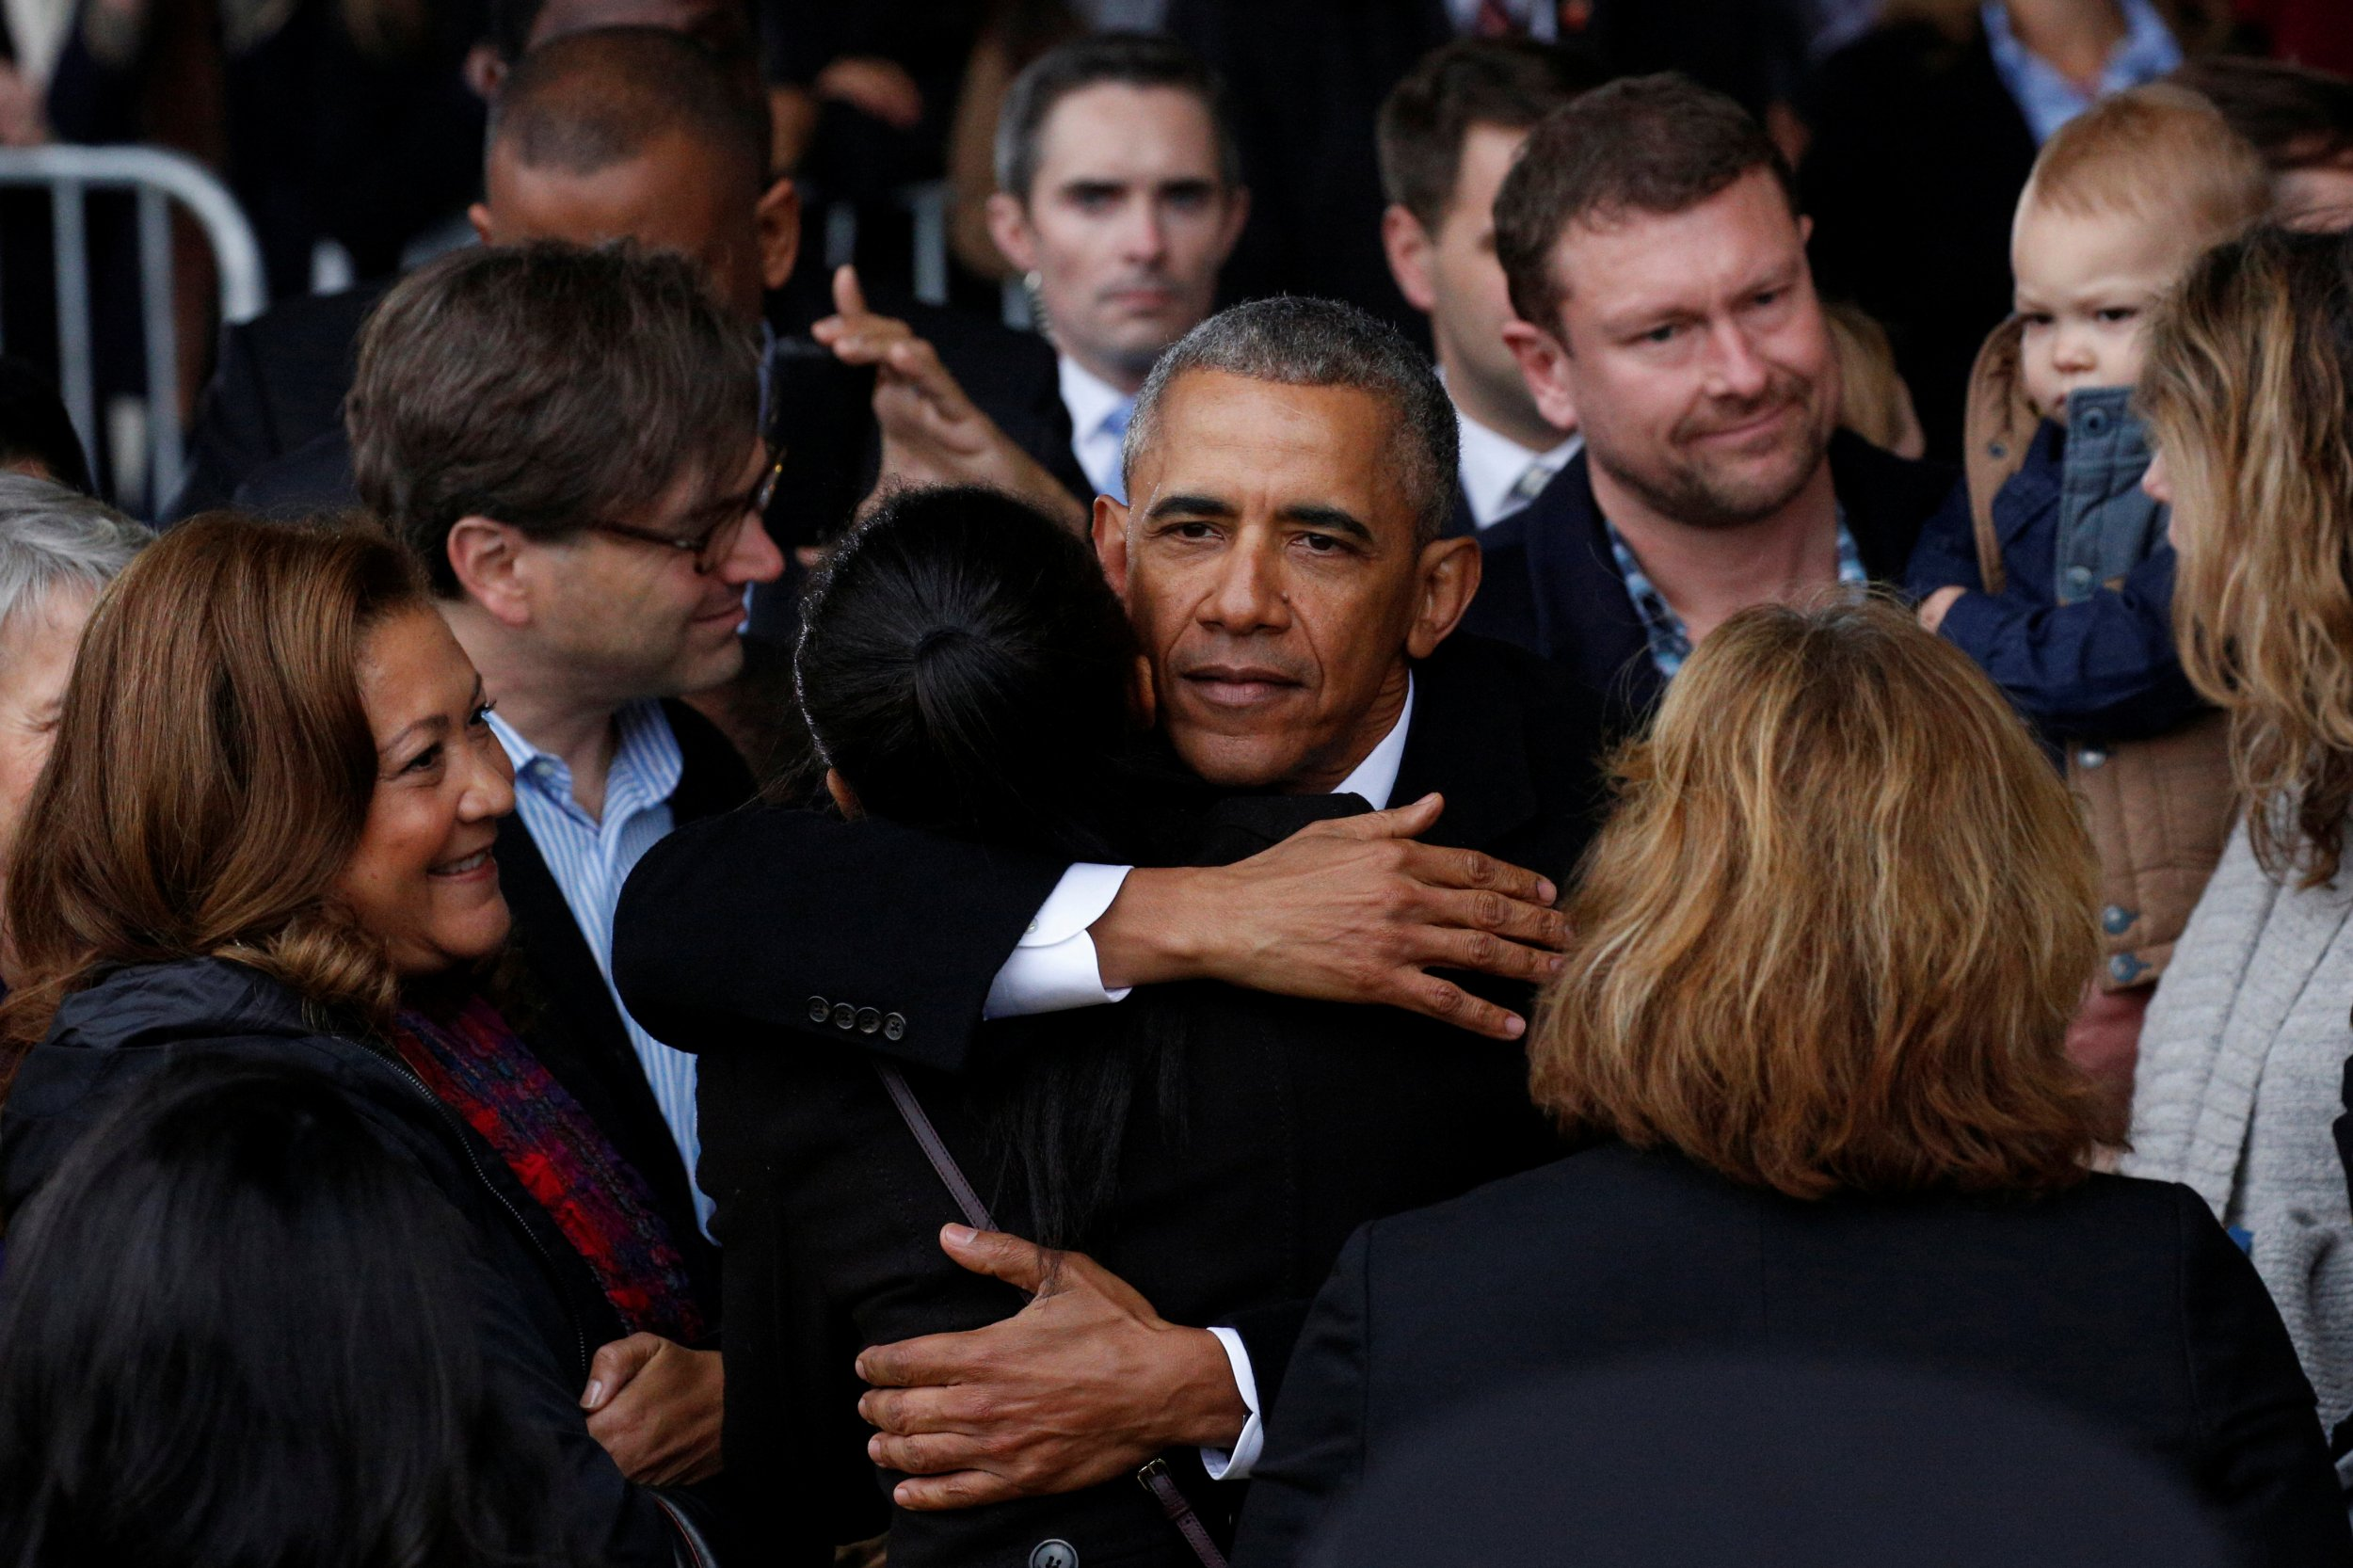 Obama Wastes Little Time In Condemning Republicans For 'Repeal and Replace' On Obamacare